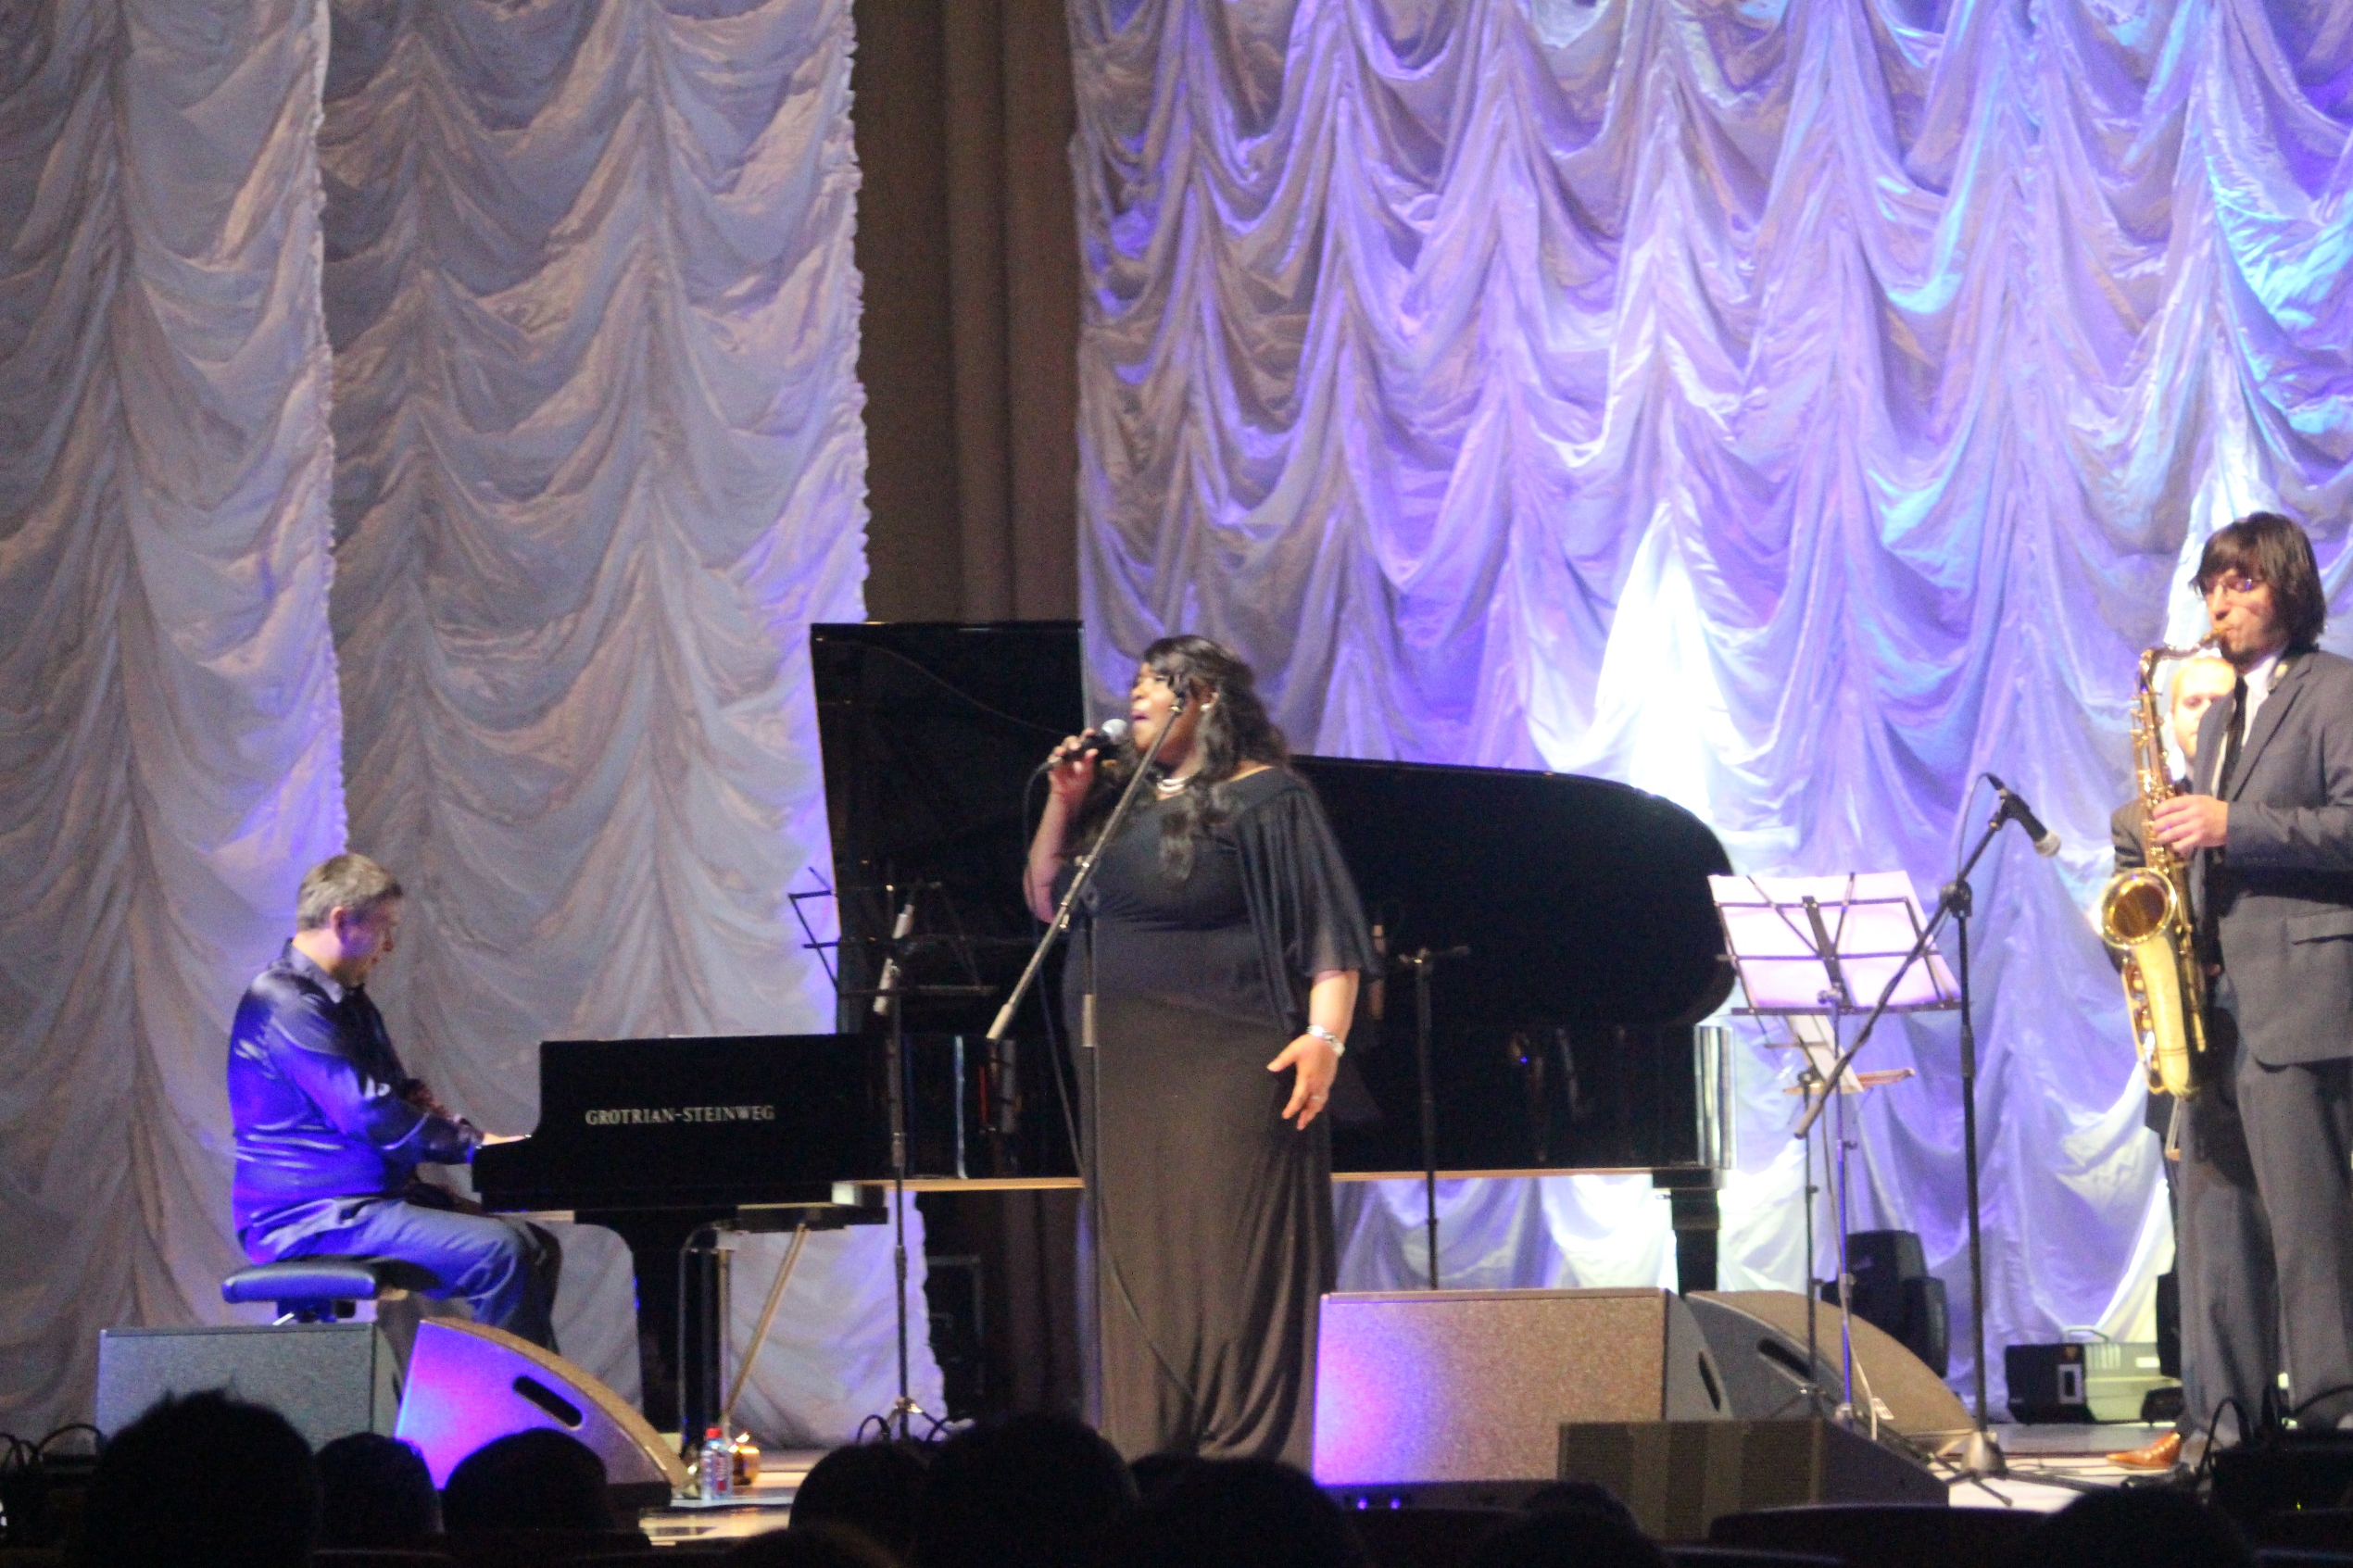 Michelle walker in concert at at the philharmonic in vladivostok, russia.